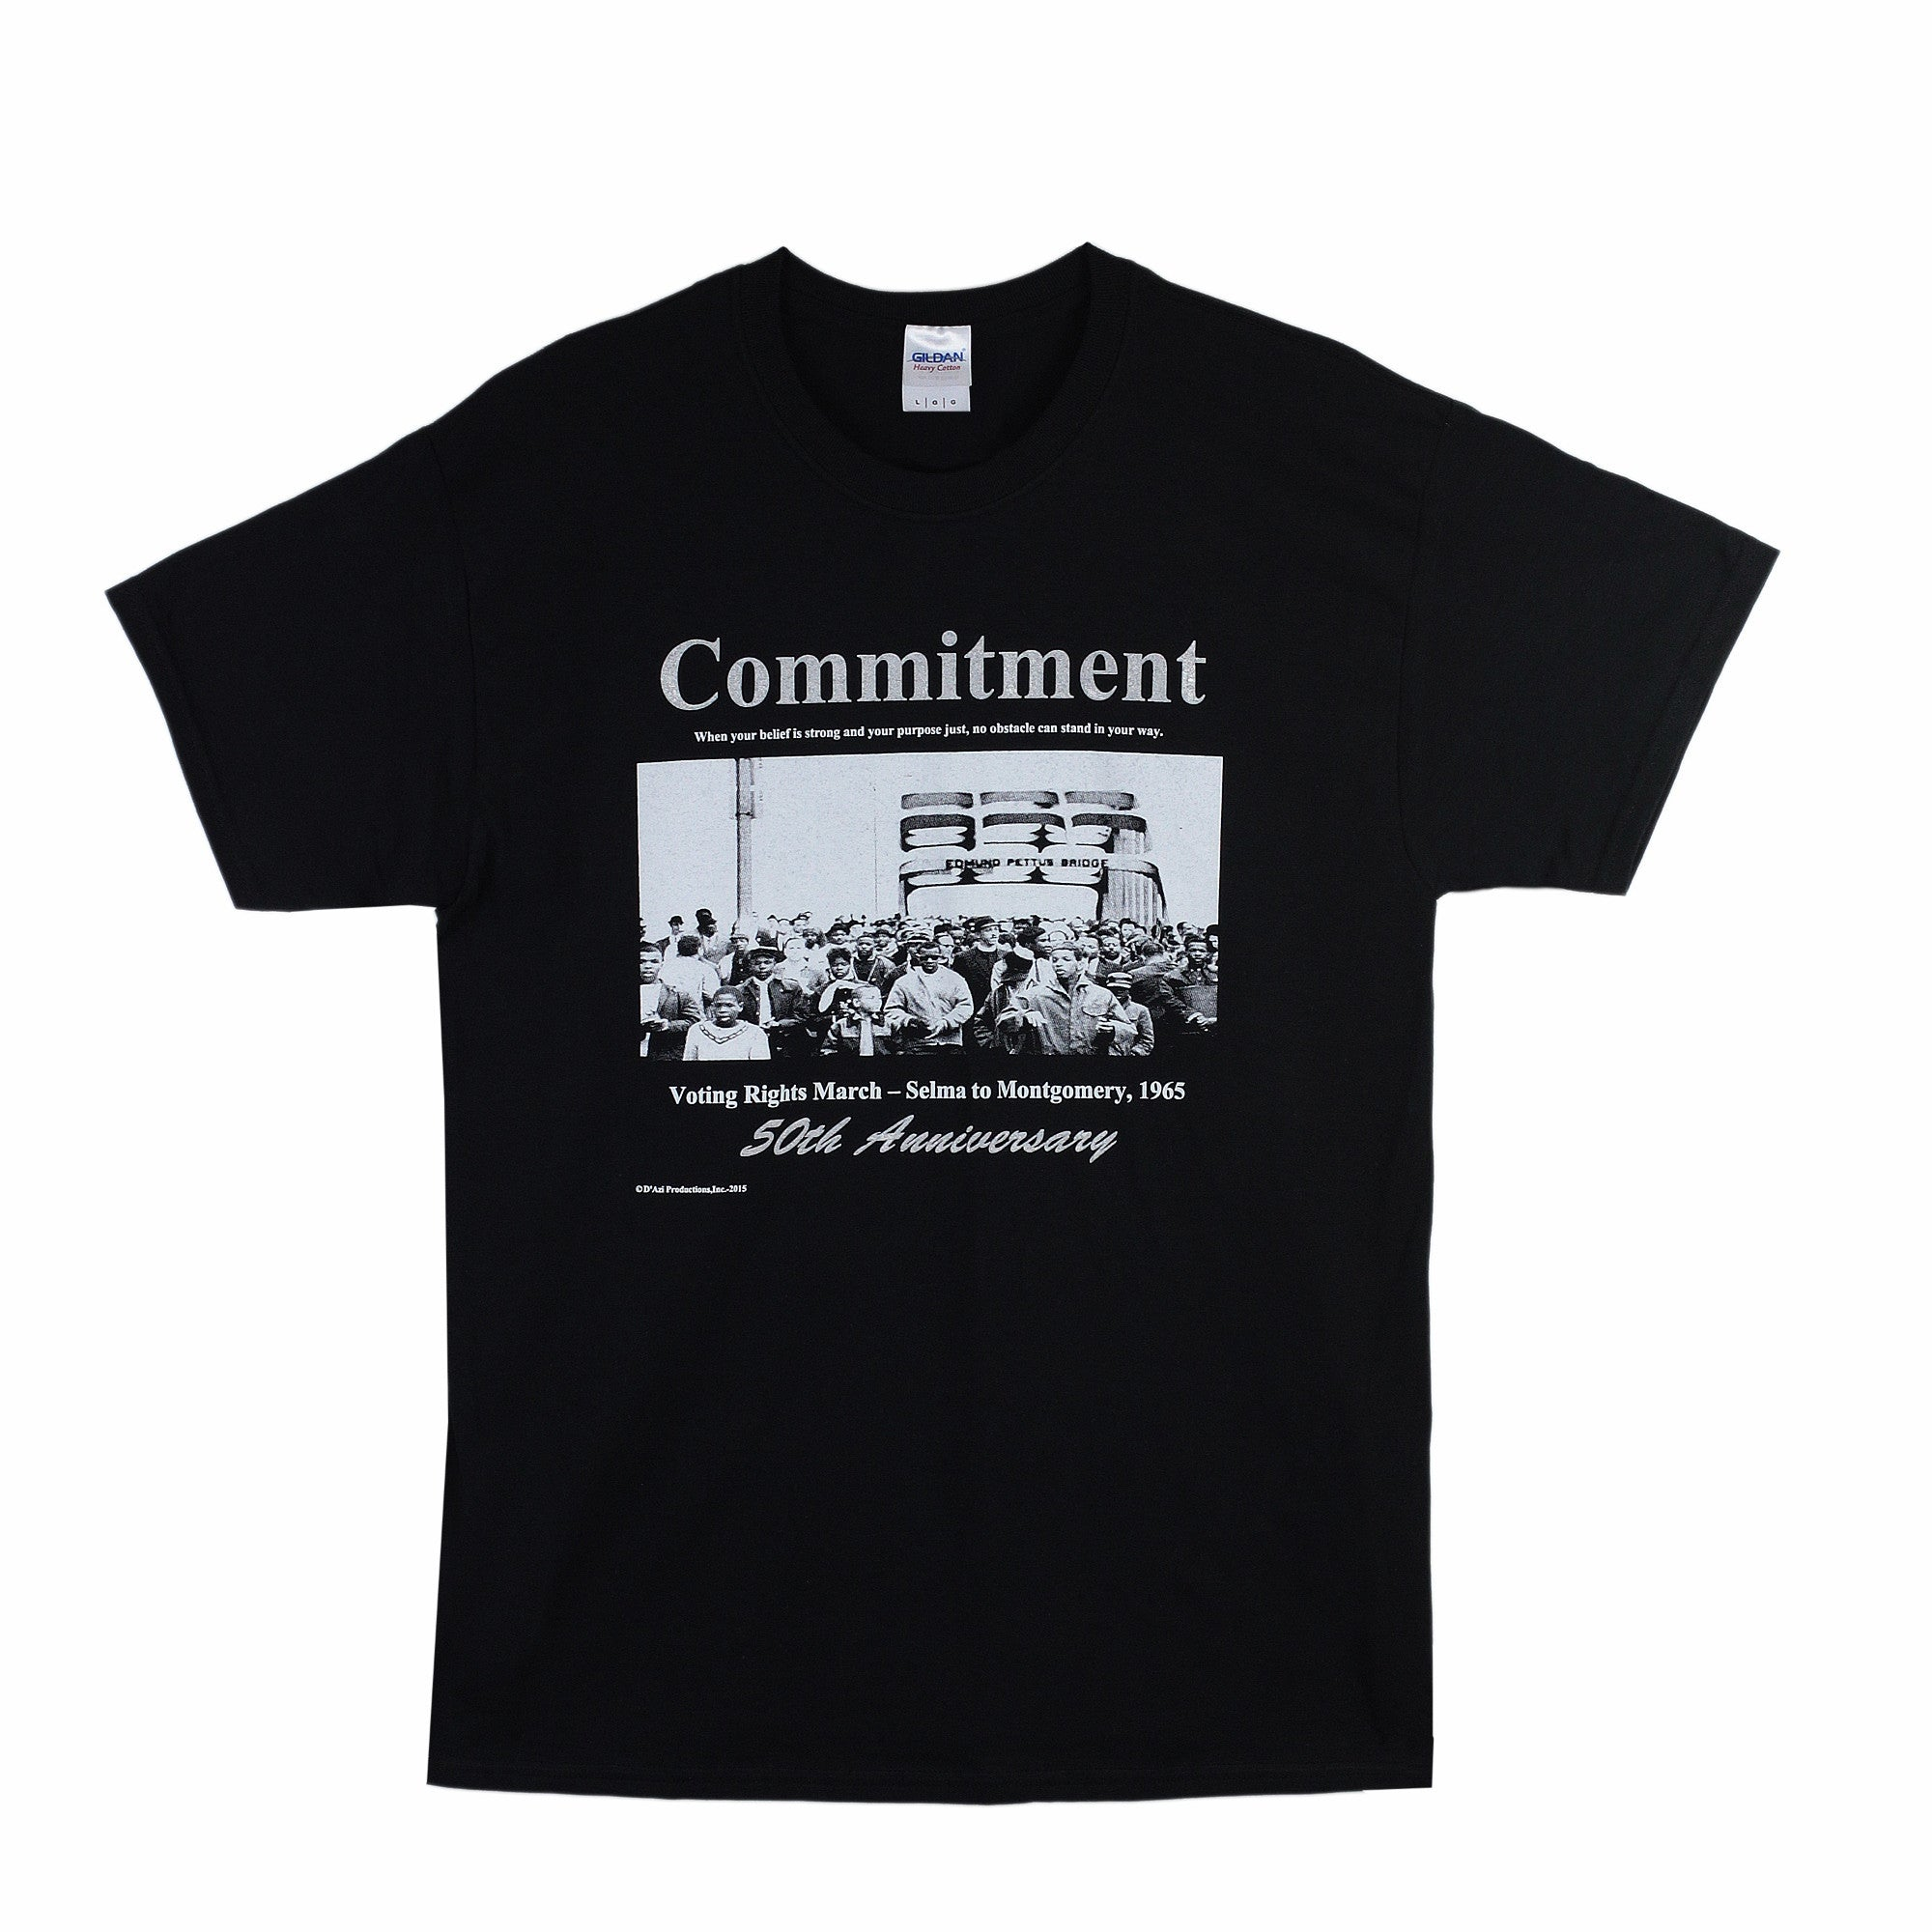 Commitment: African American Motivational T-Shirt by D'azi Productions